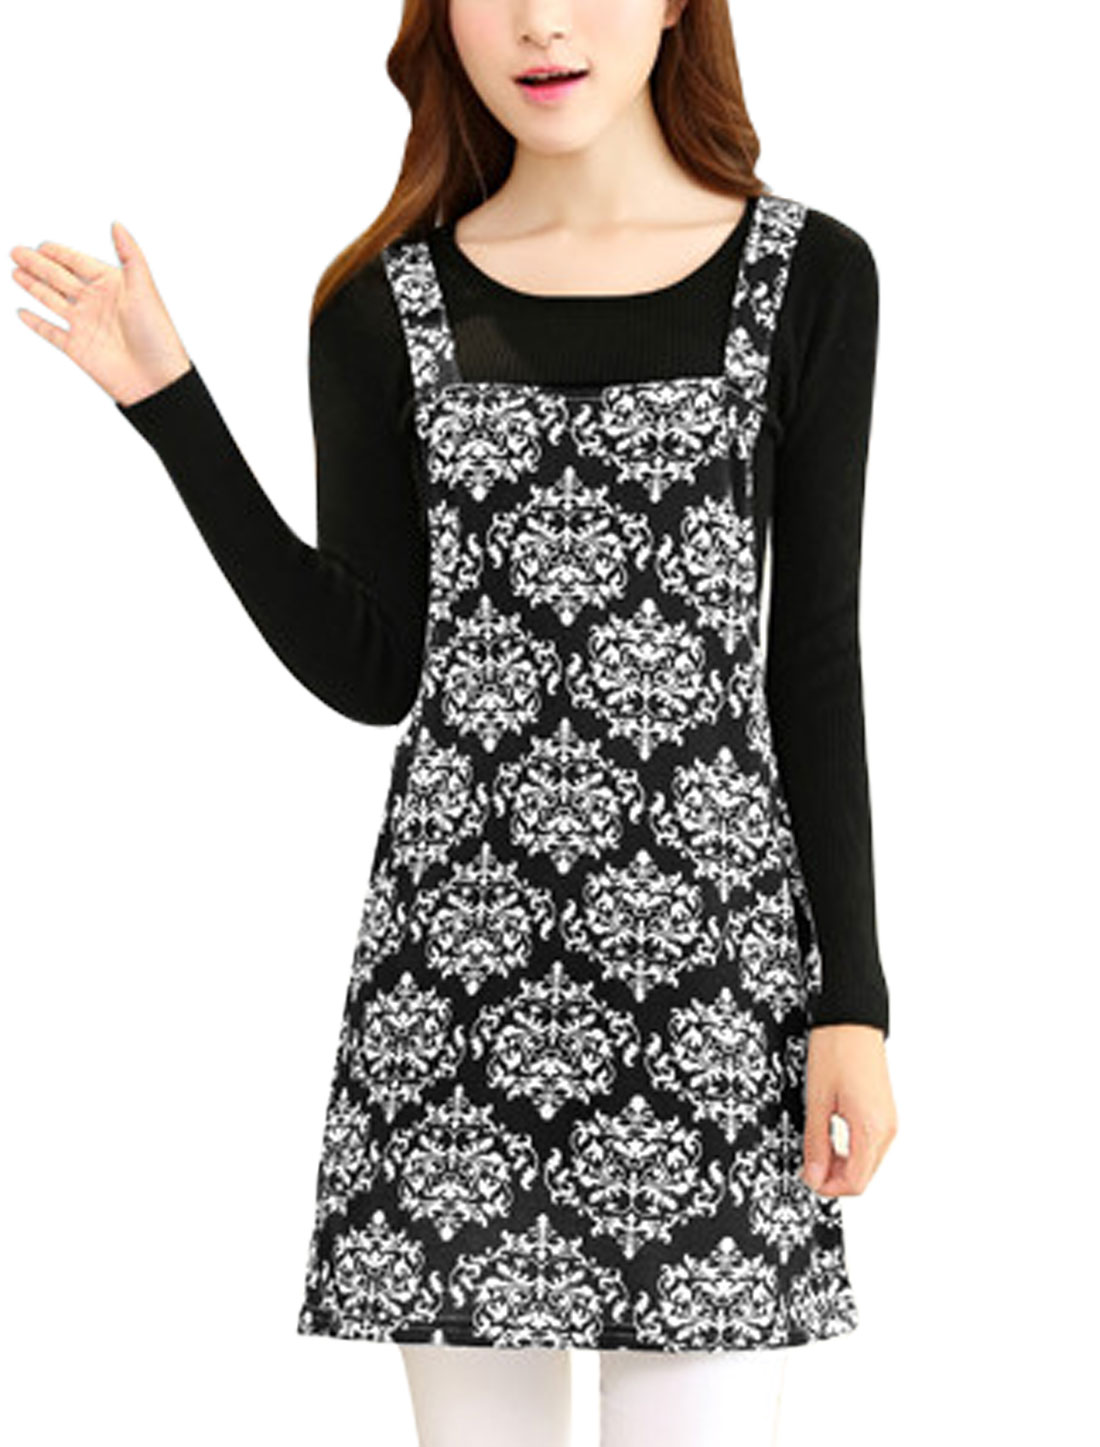 Women Straps Novelty Prints Sleeveless Korean Style Knit Suspender Dress Black M